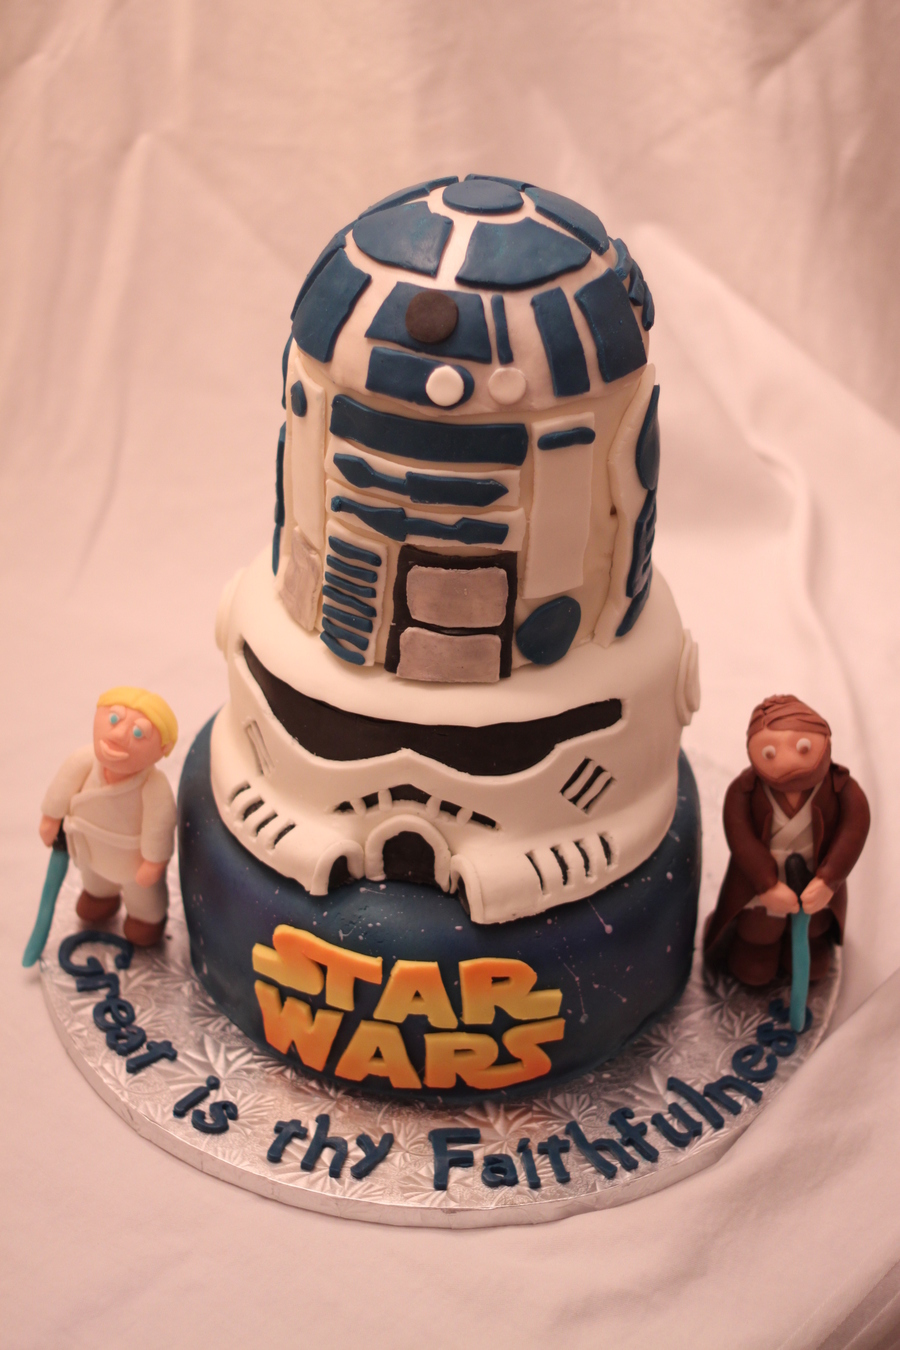 How To Ice A Star Wars Cake